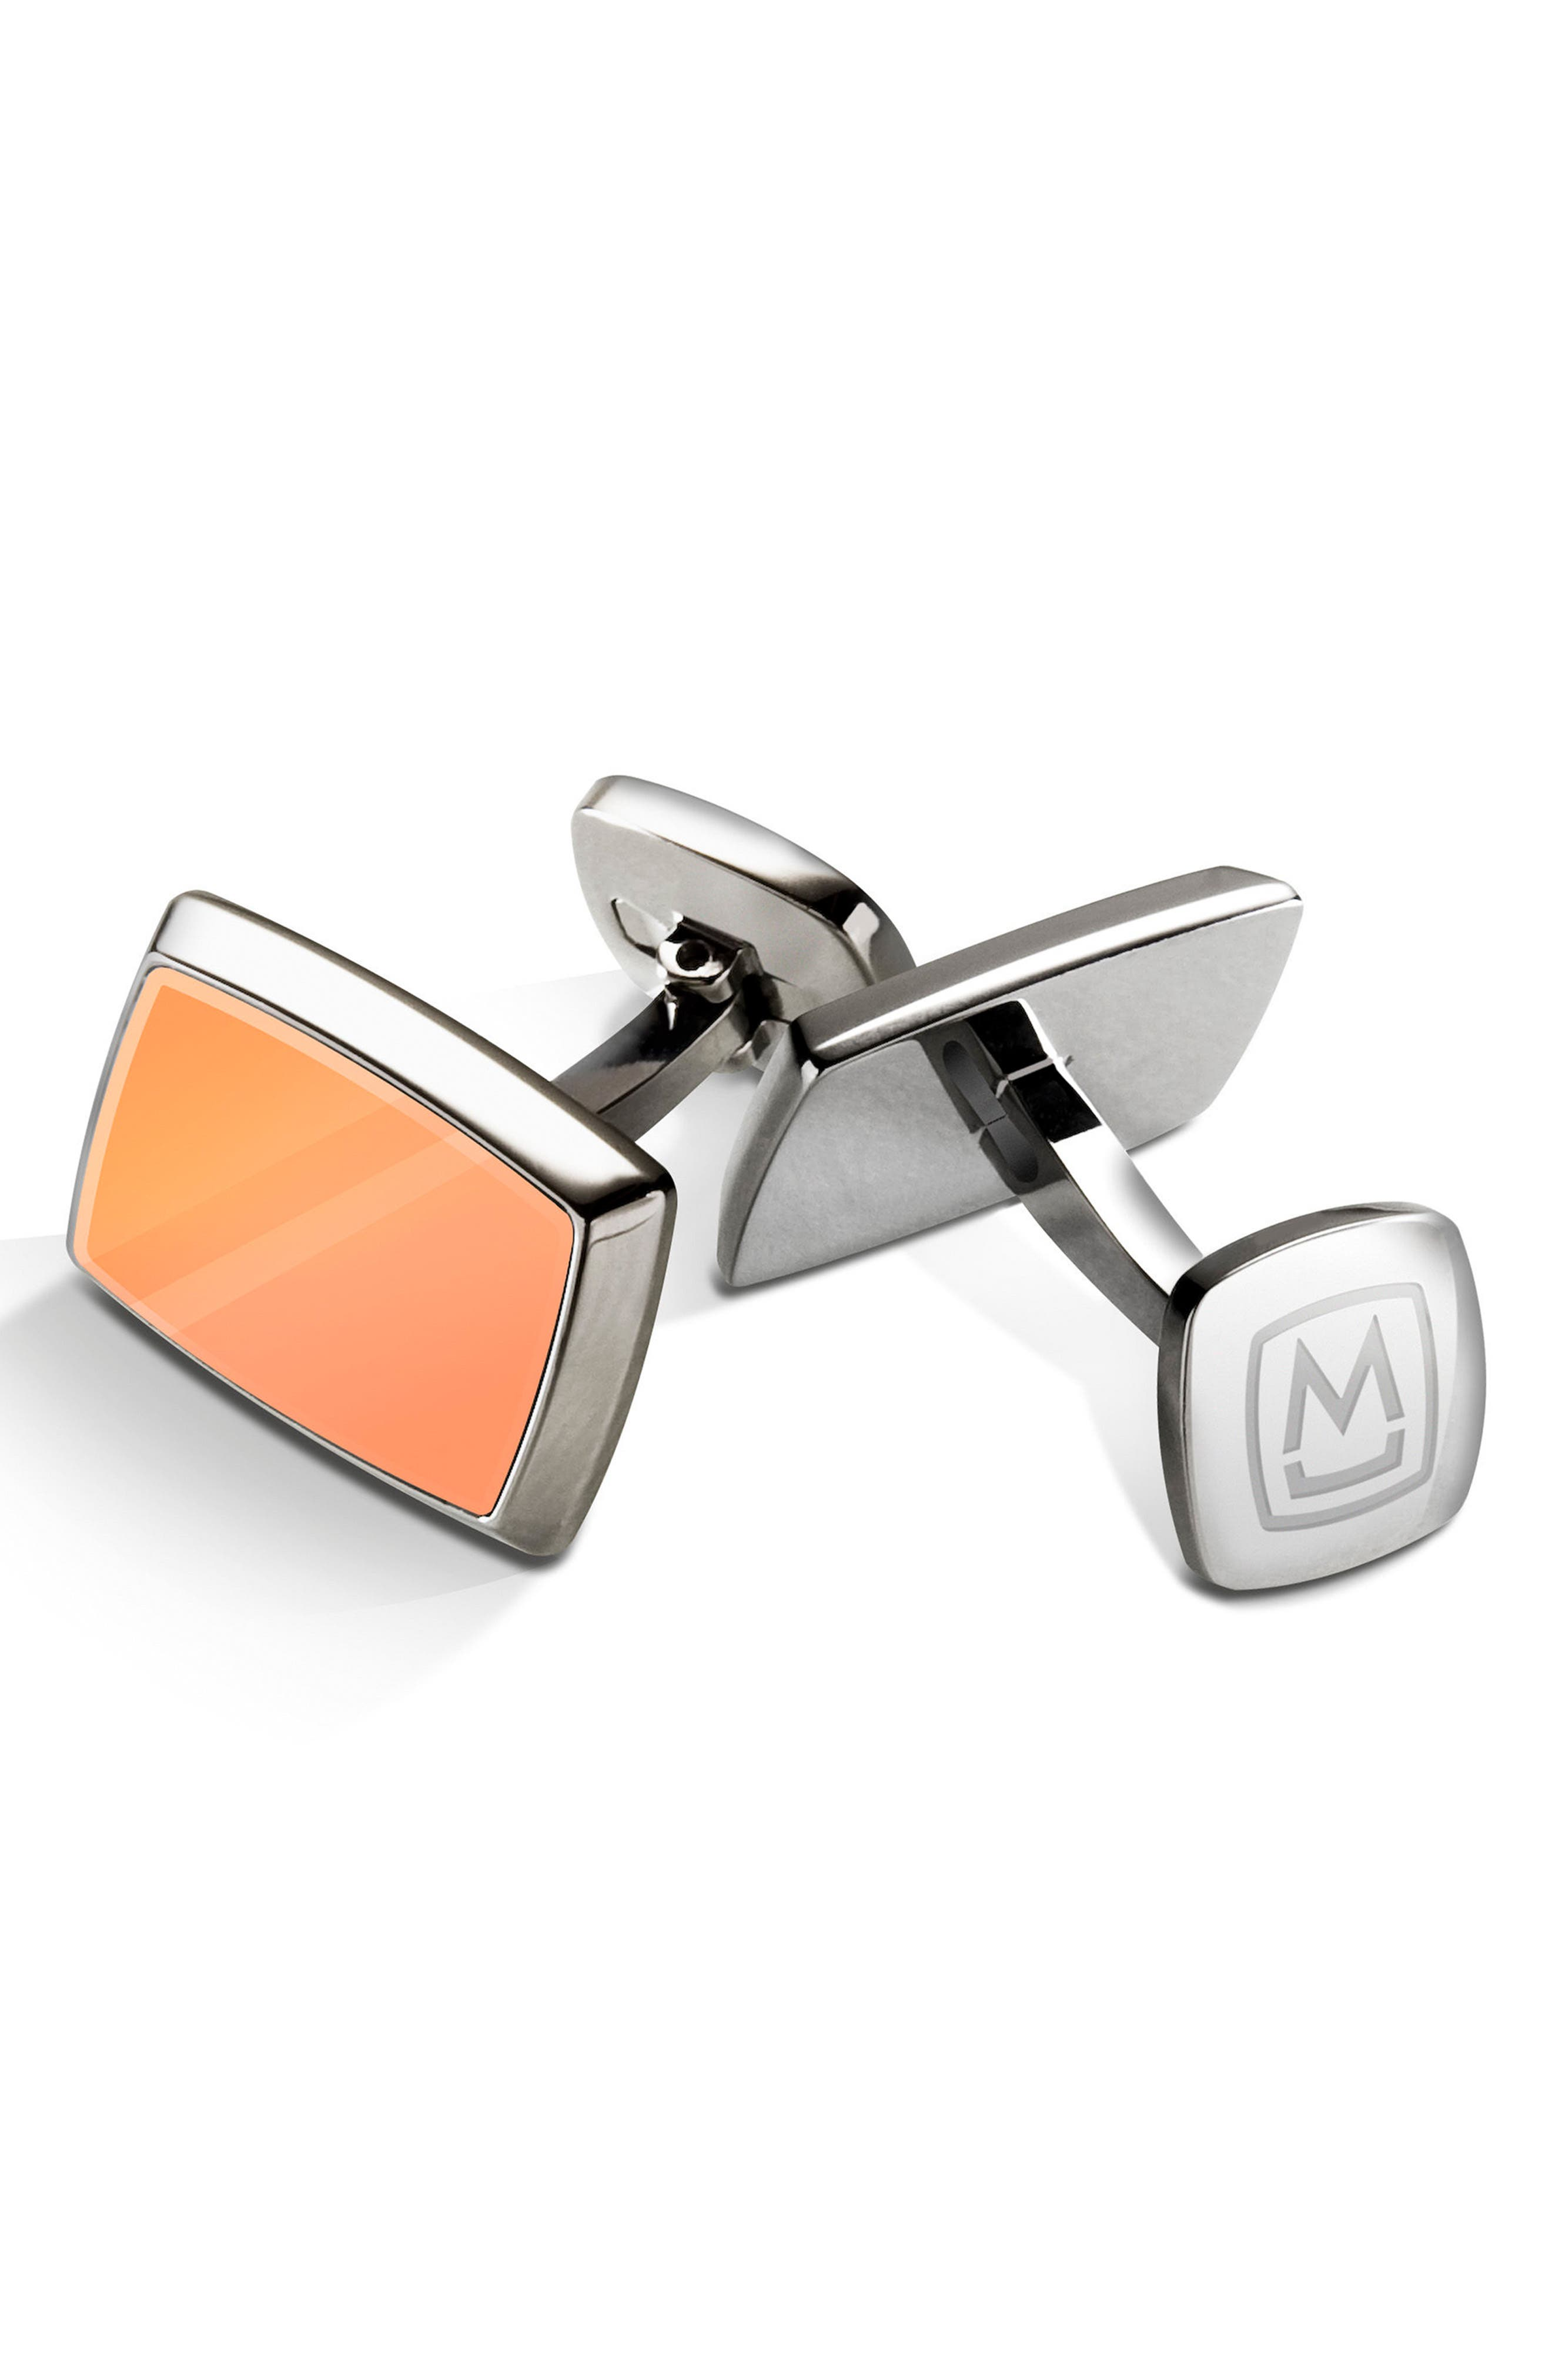 M-Clip Stainless Steel Cuff Links,                         Main,                         color, 650